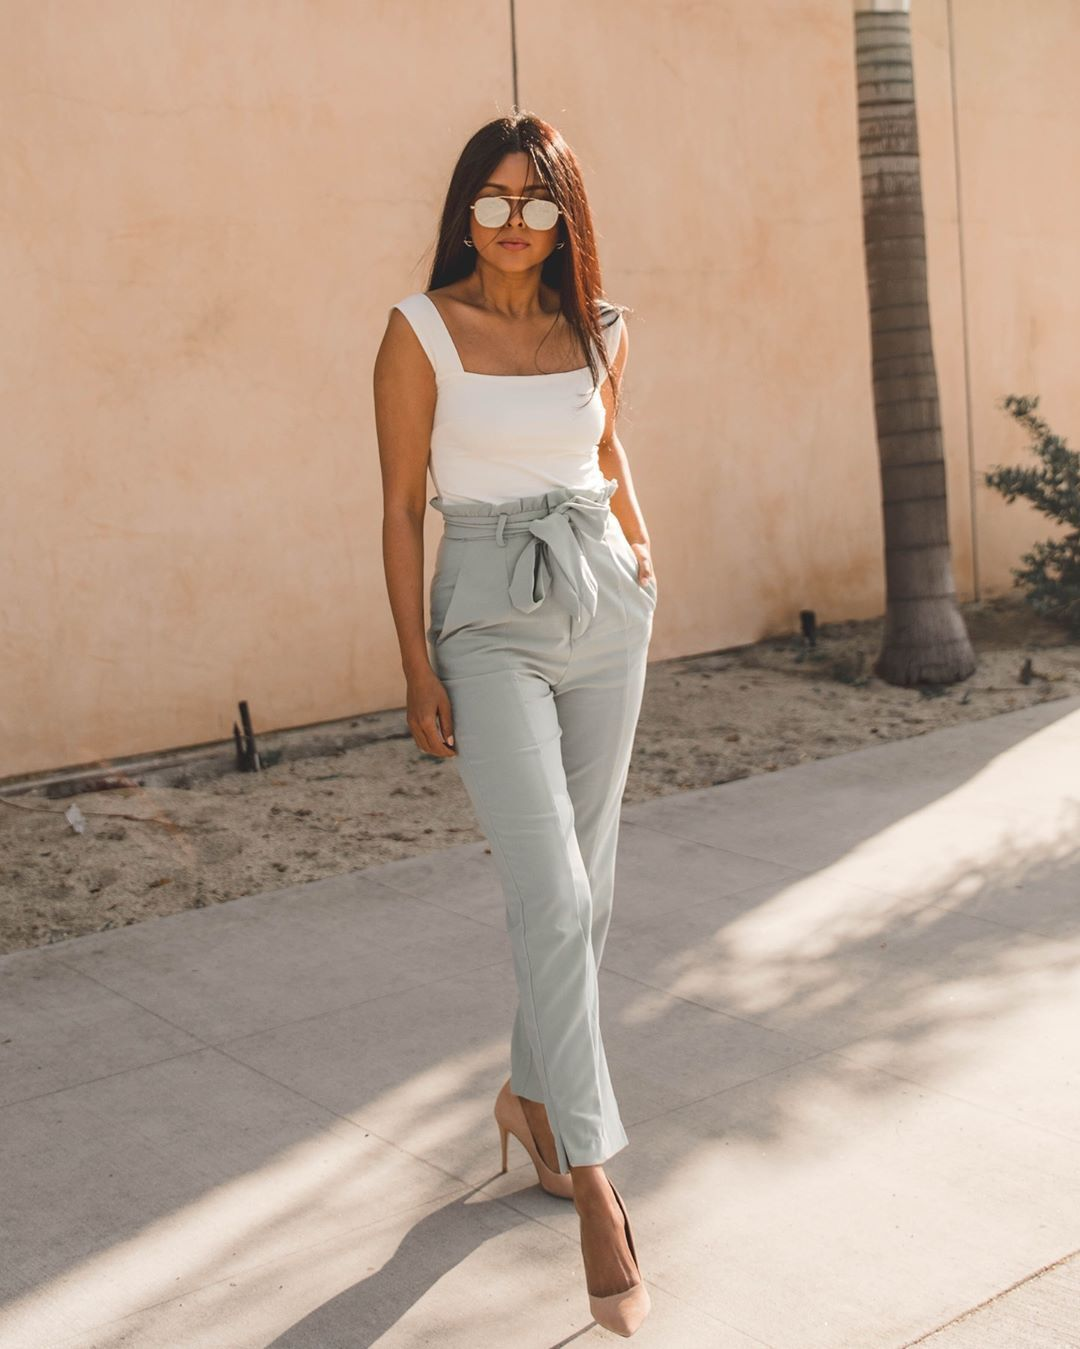 Pants, $54 at vicicollection.com – Wheretoget